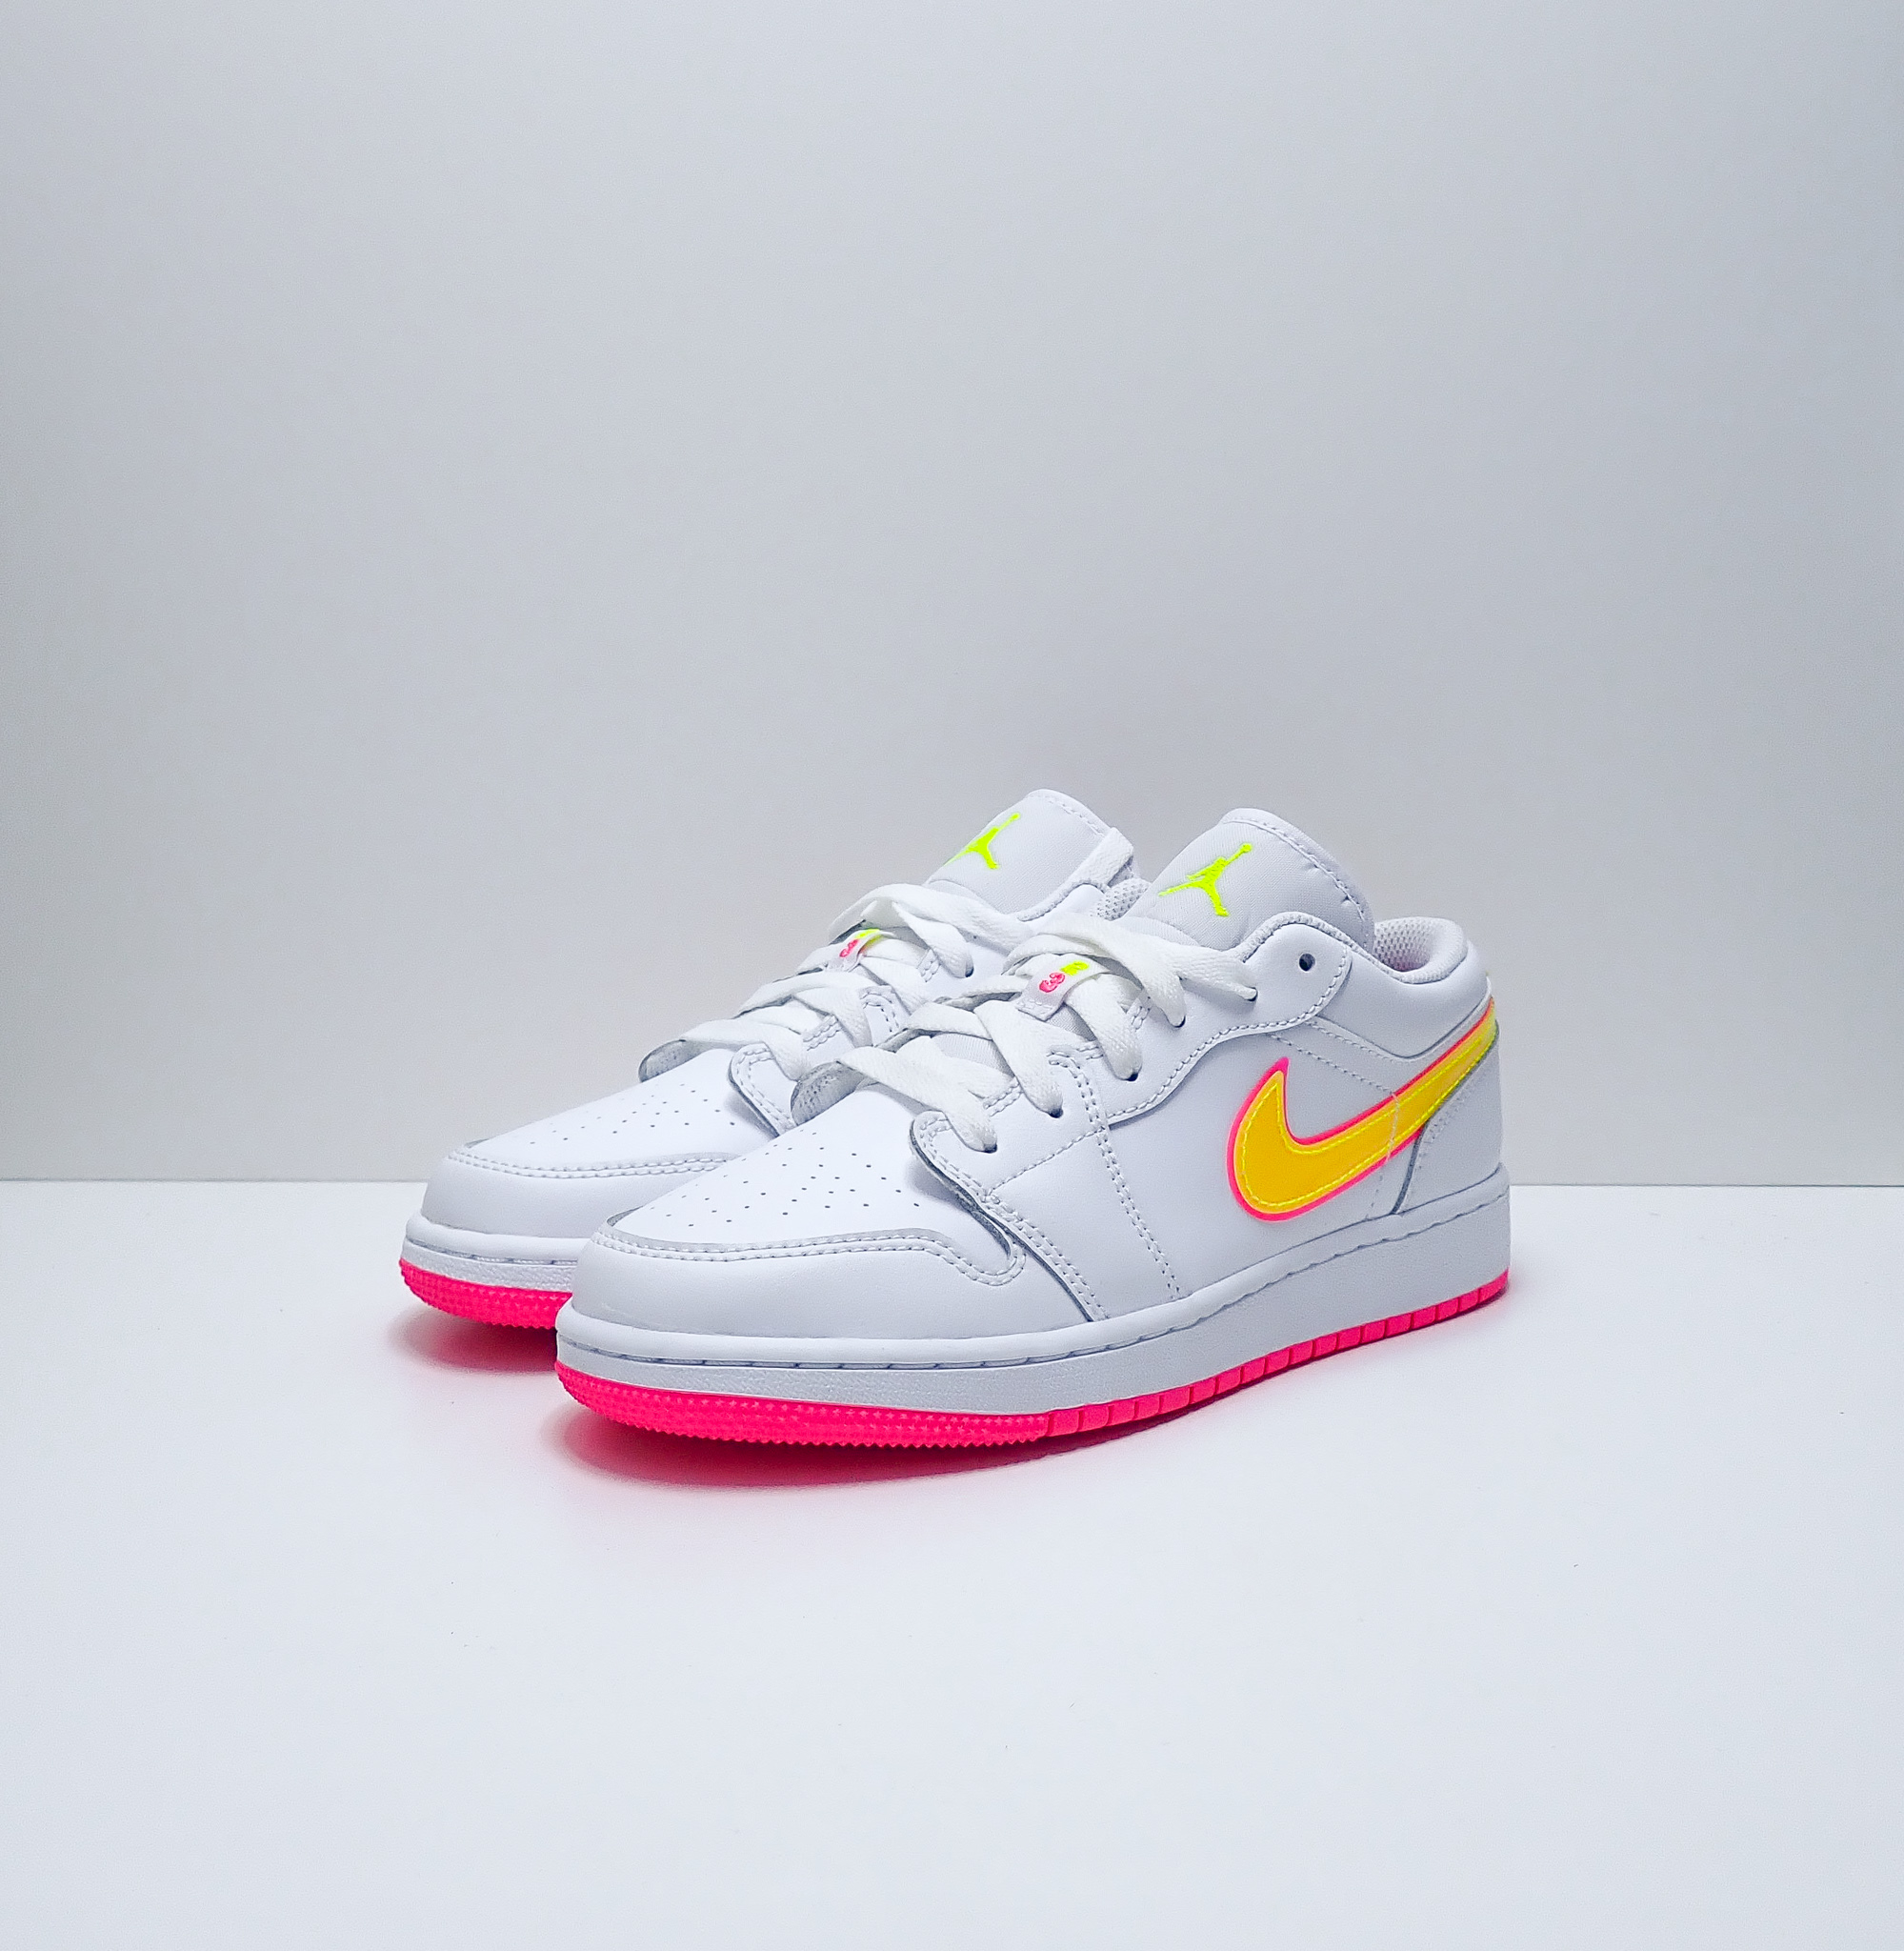 Jordan 1 Low GS Edge Glow